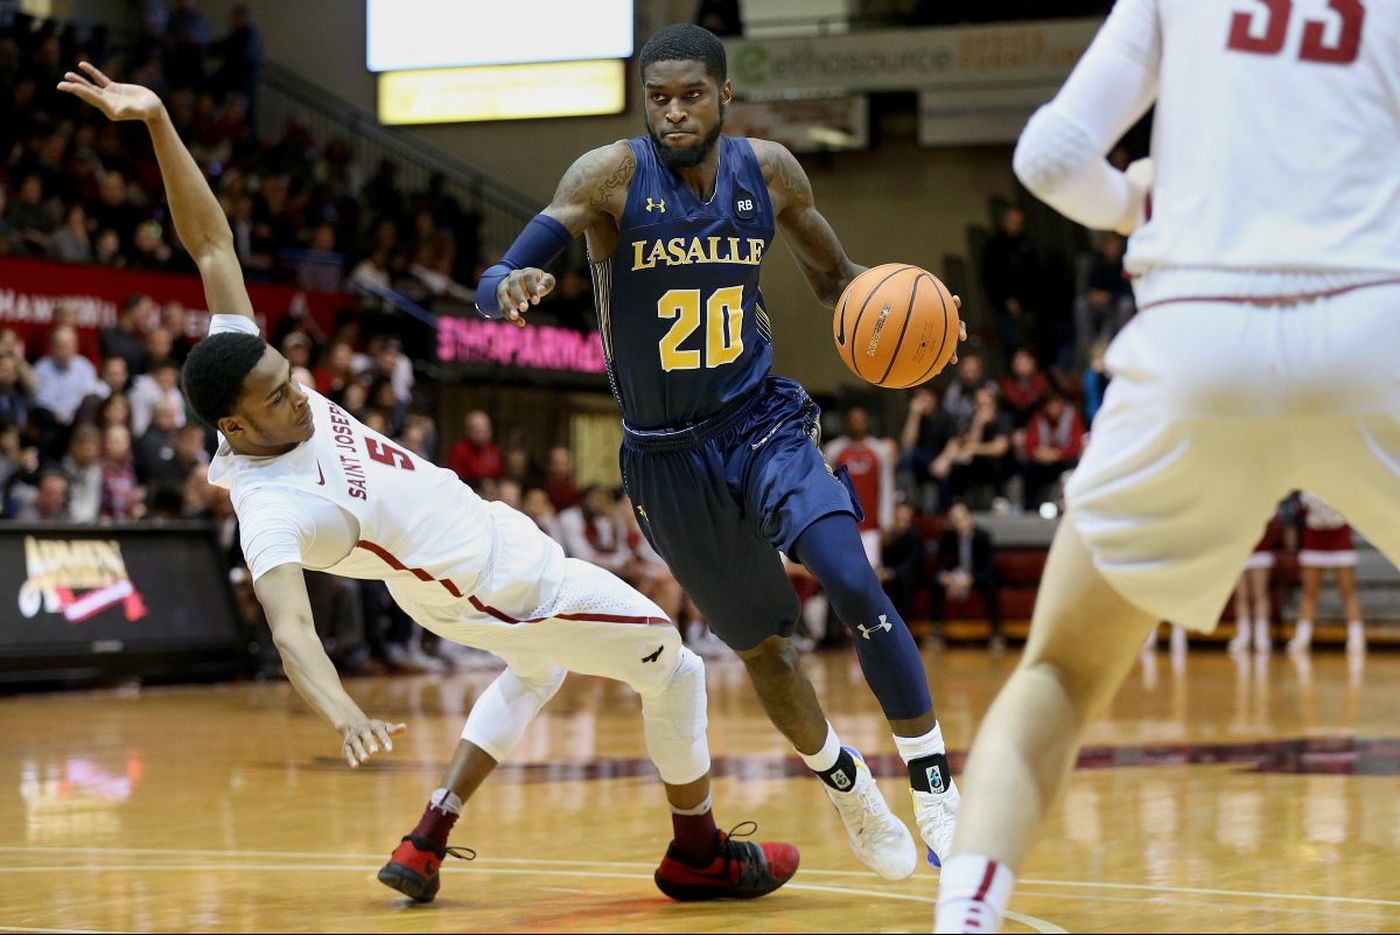 Rhode Island favored, but La Salle believes anything can happen in the Atlantic Ten tournament